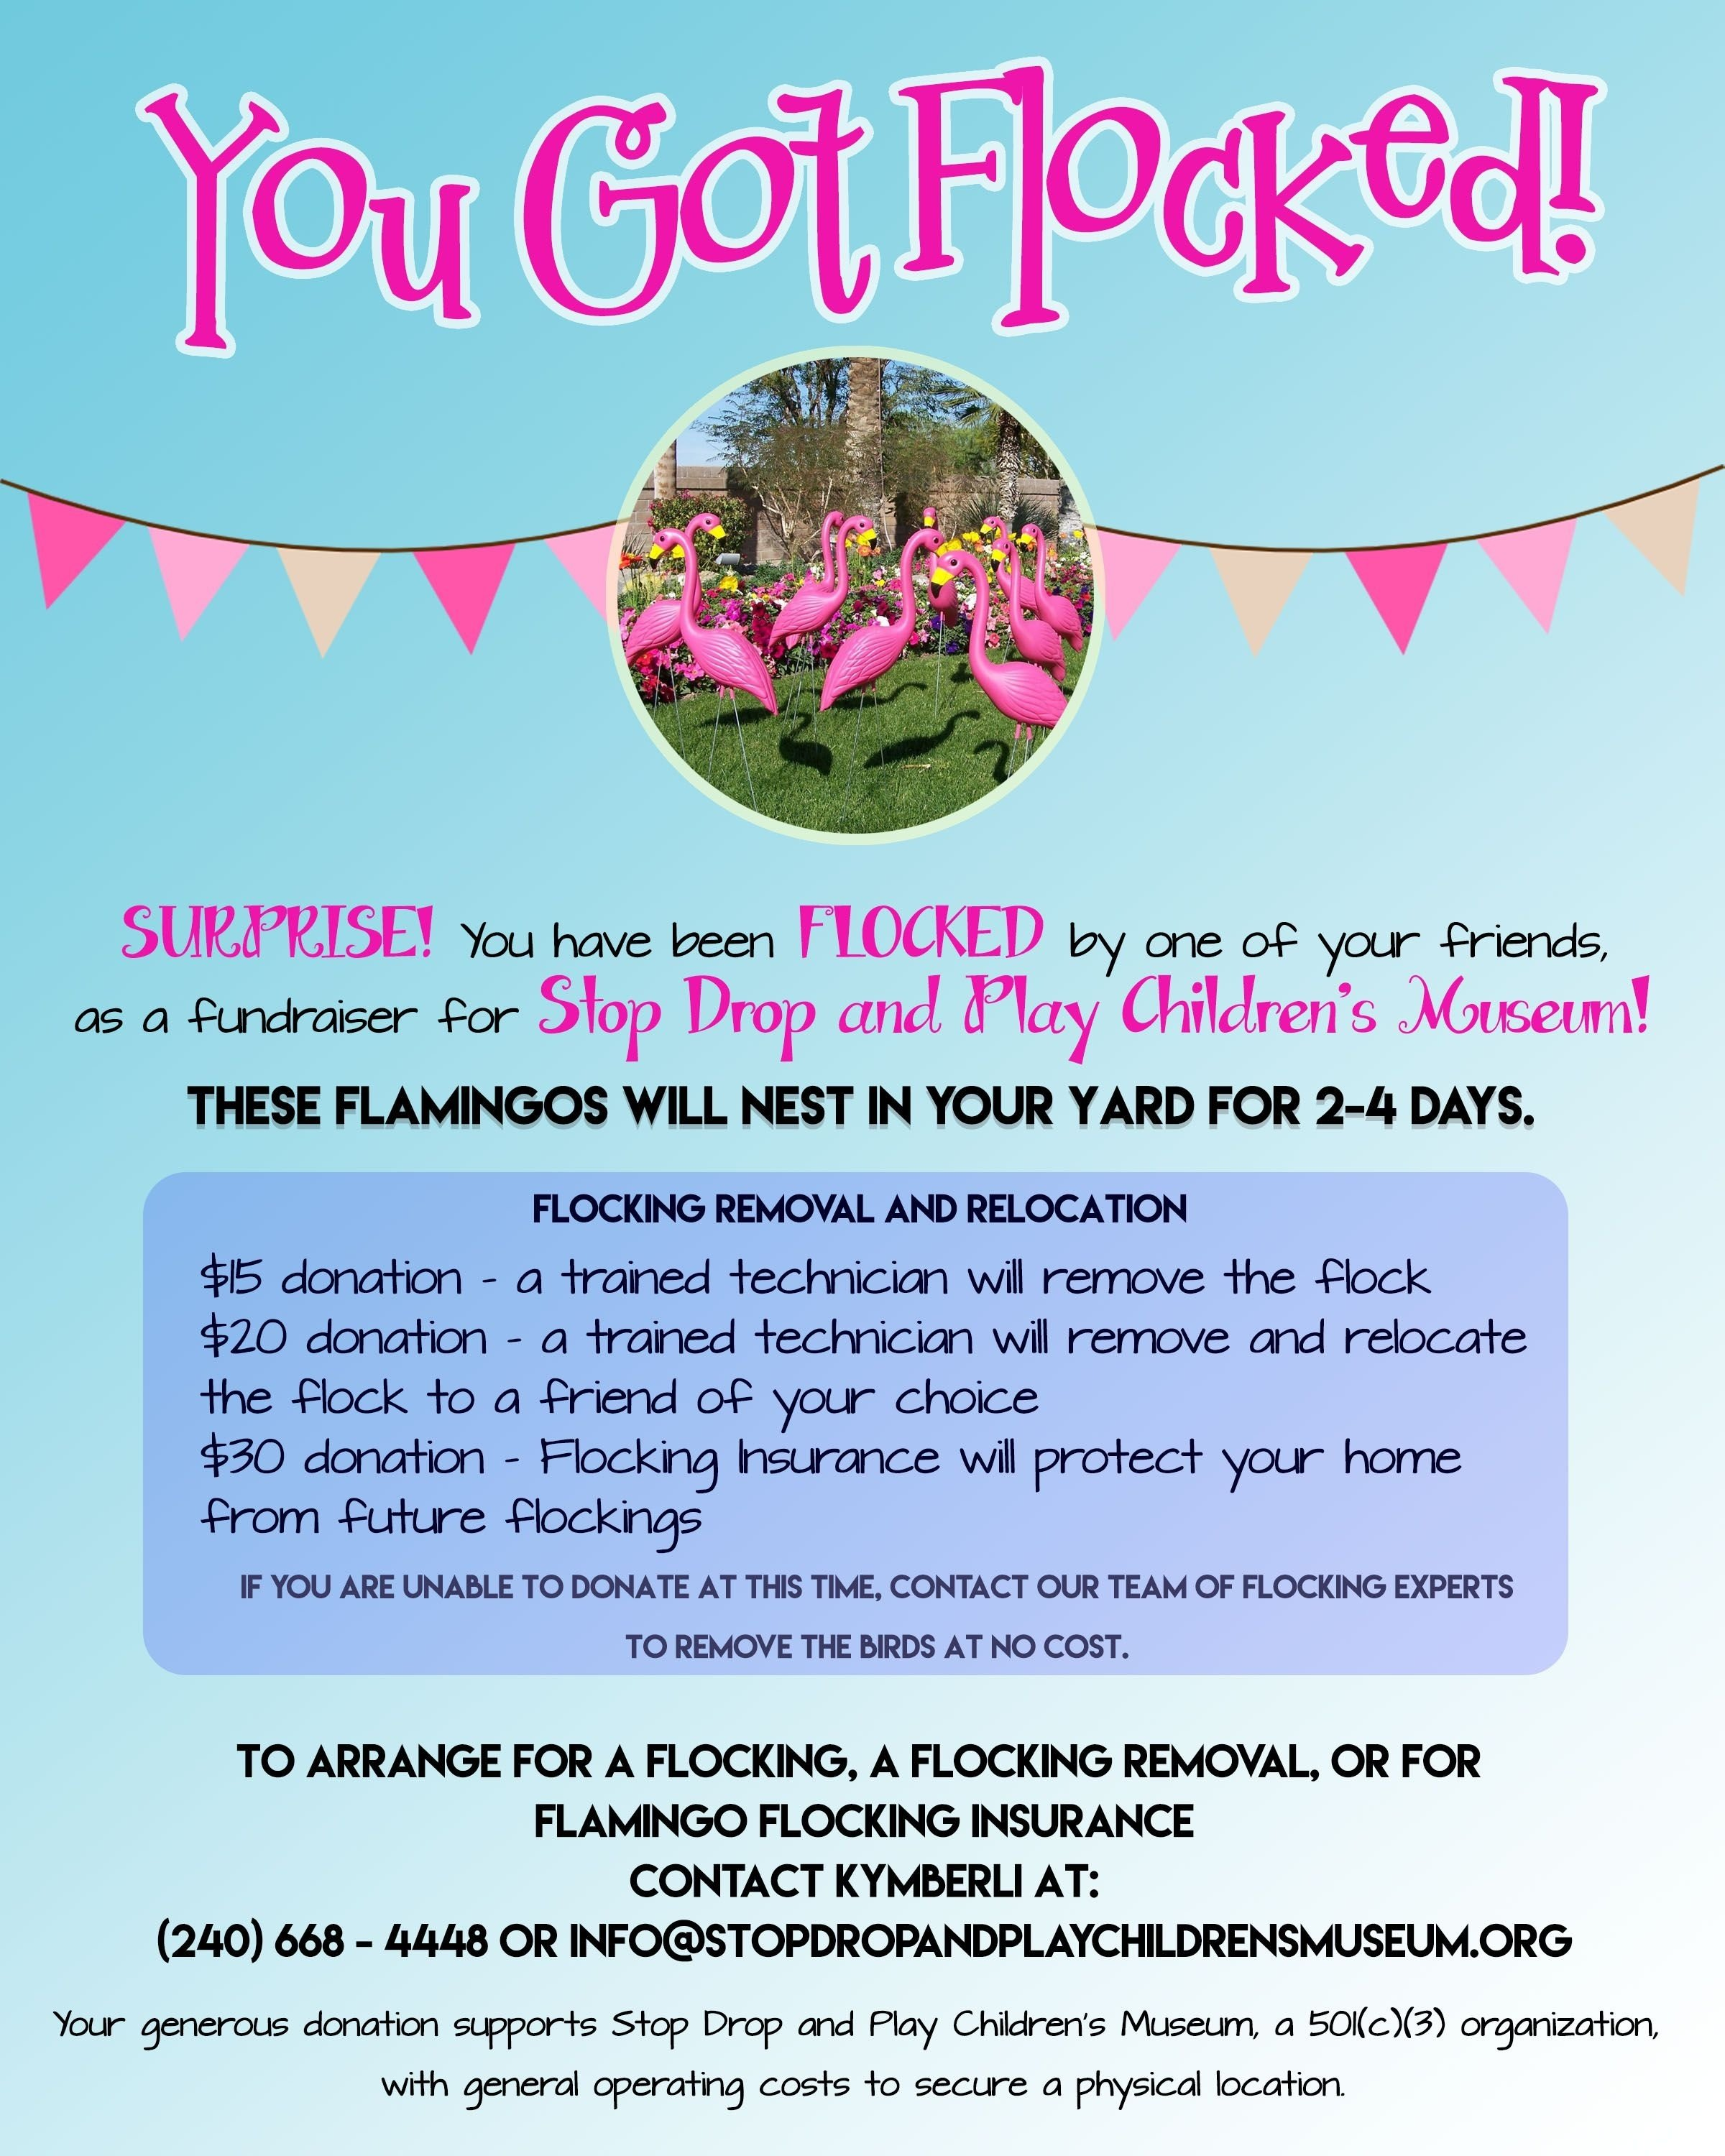 10 Lovely Fundraiser Ideas For Small Groups flamingo flocking fundraiser stop drop and play childrens museum 2020